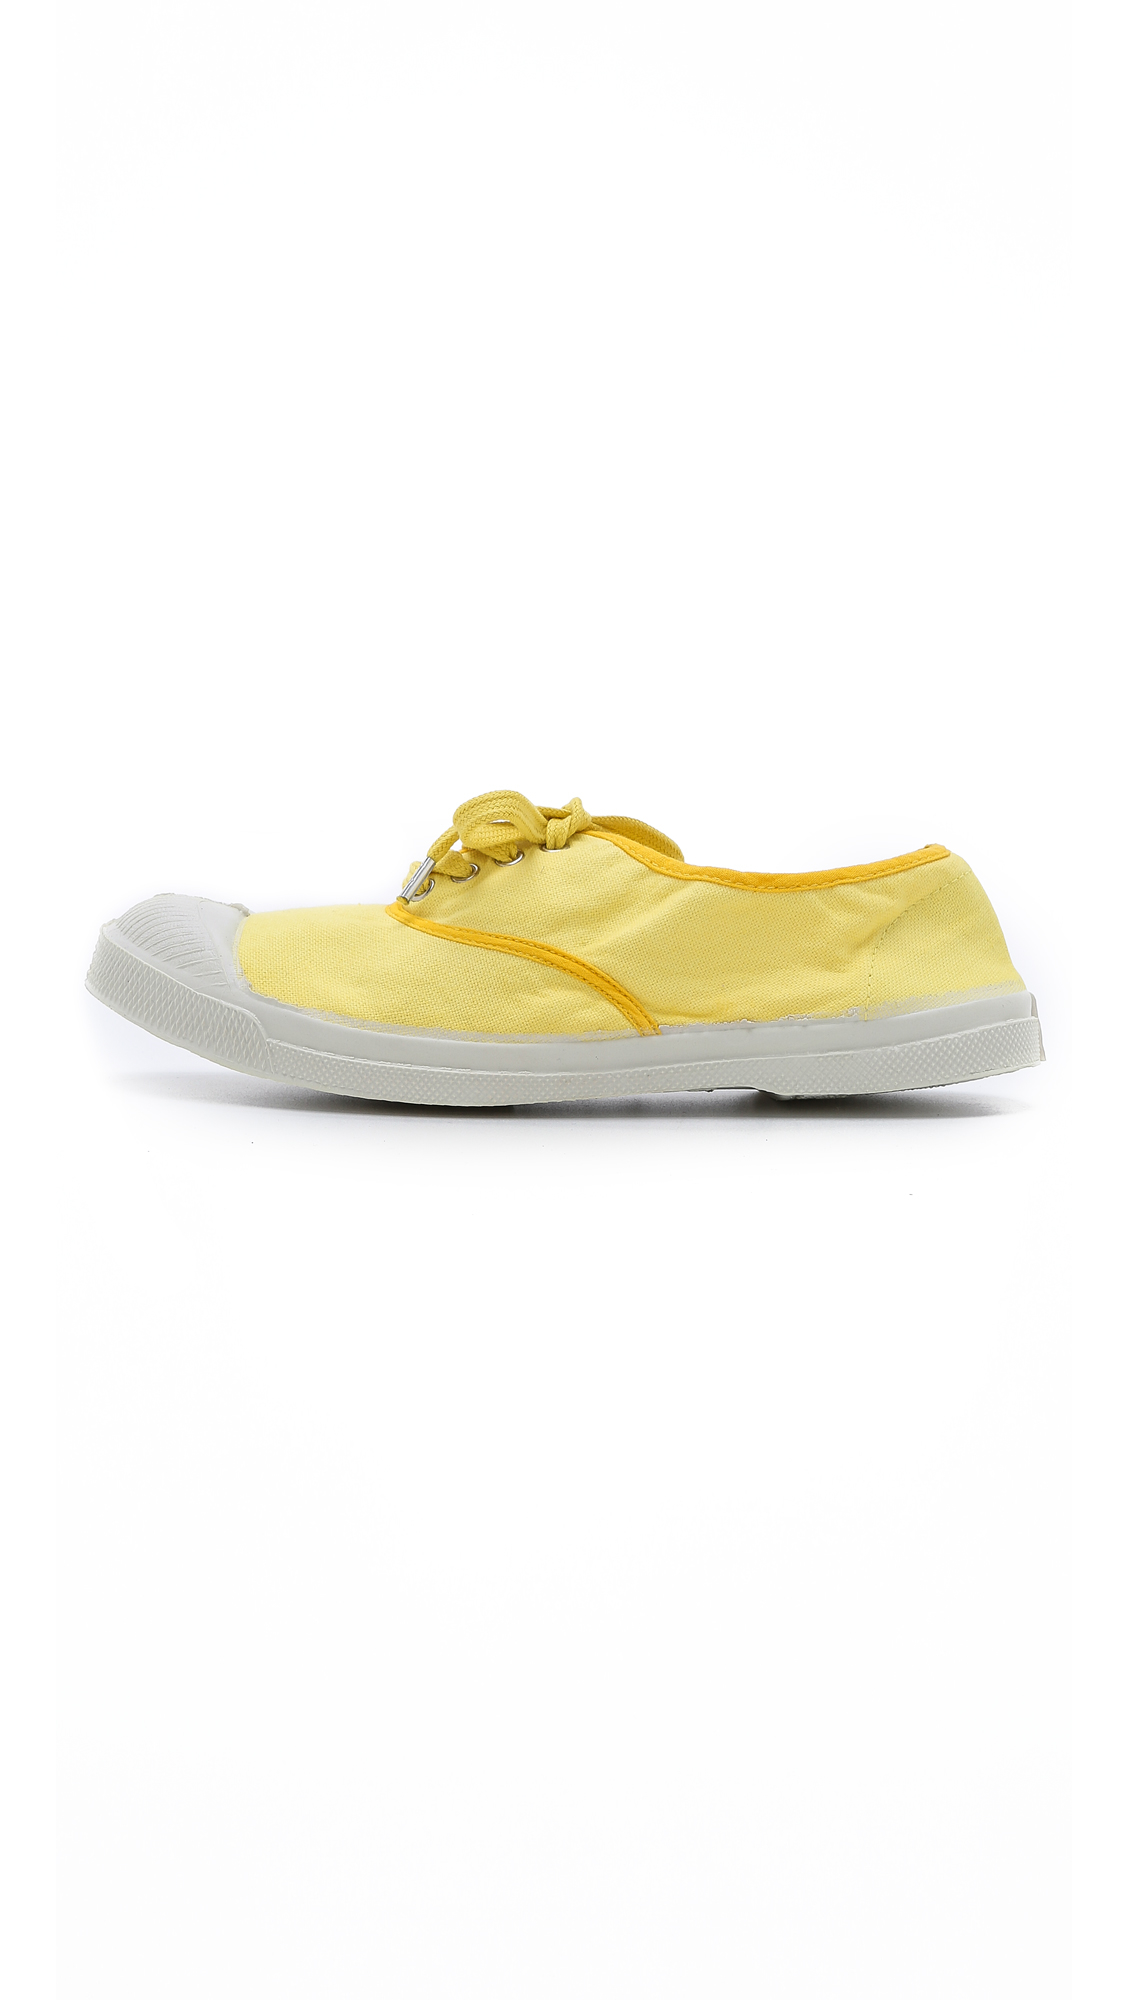 Bensimon Tennis Yellow Color Lyst Piping Sneakers In SpVUzM